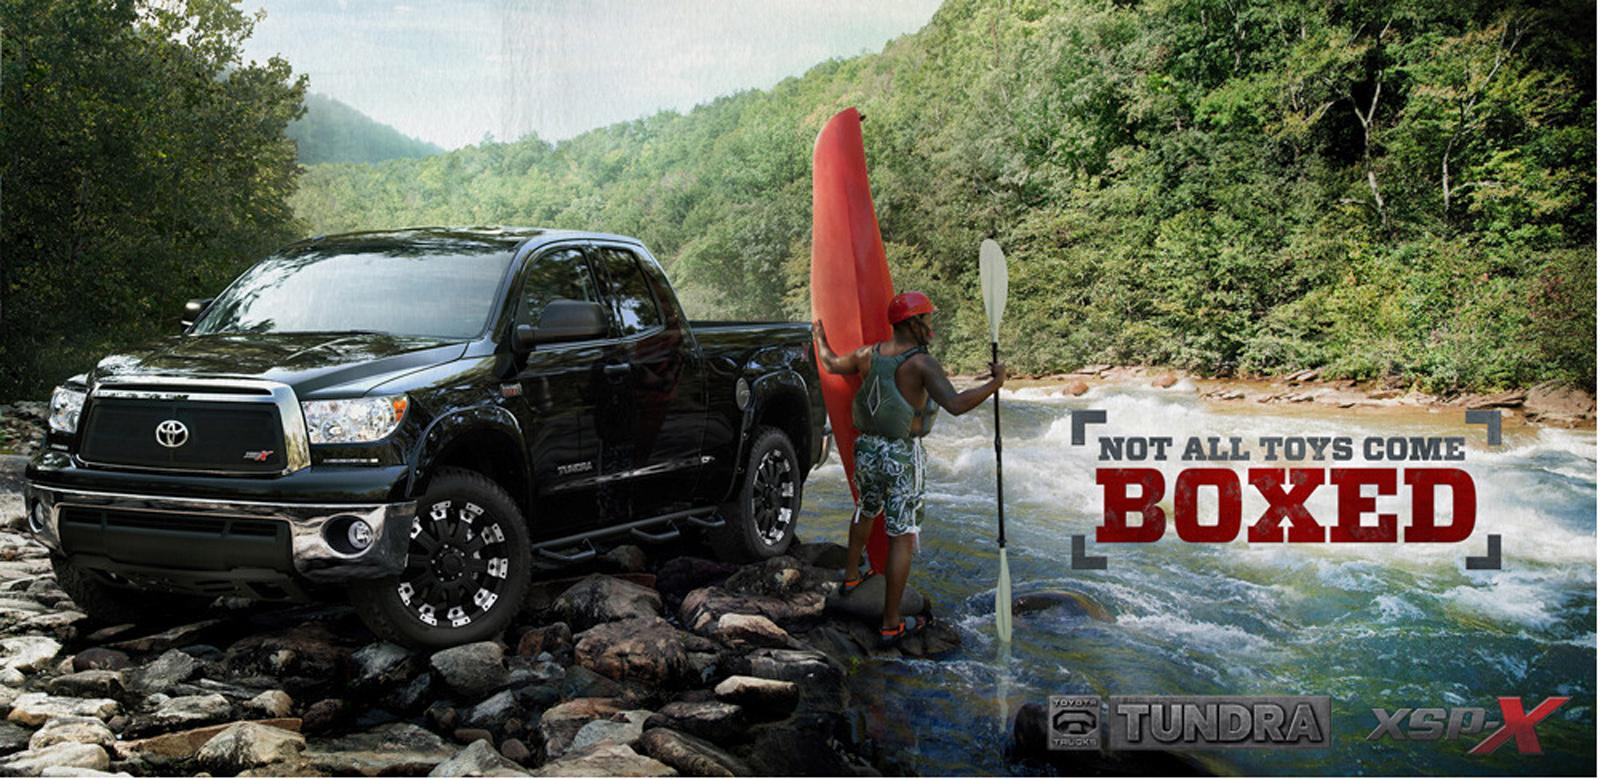 Toyota Outdoor Ad -  Not all toys come boxed